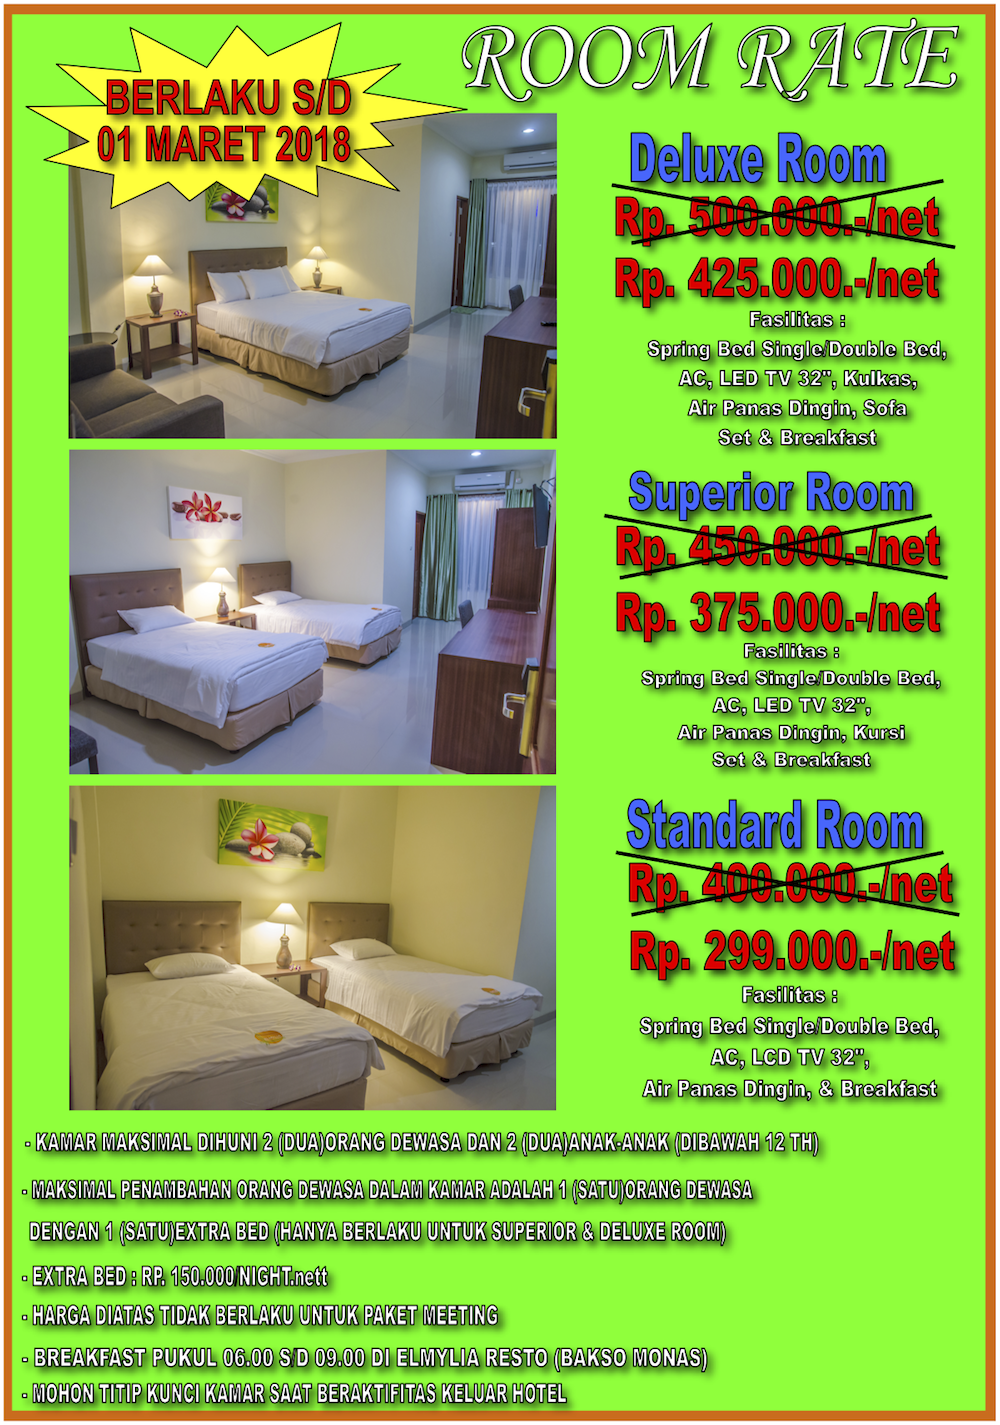 Discount Rate Room Hotel